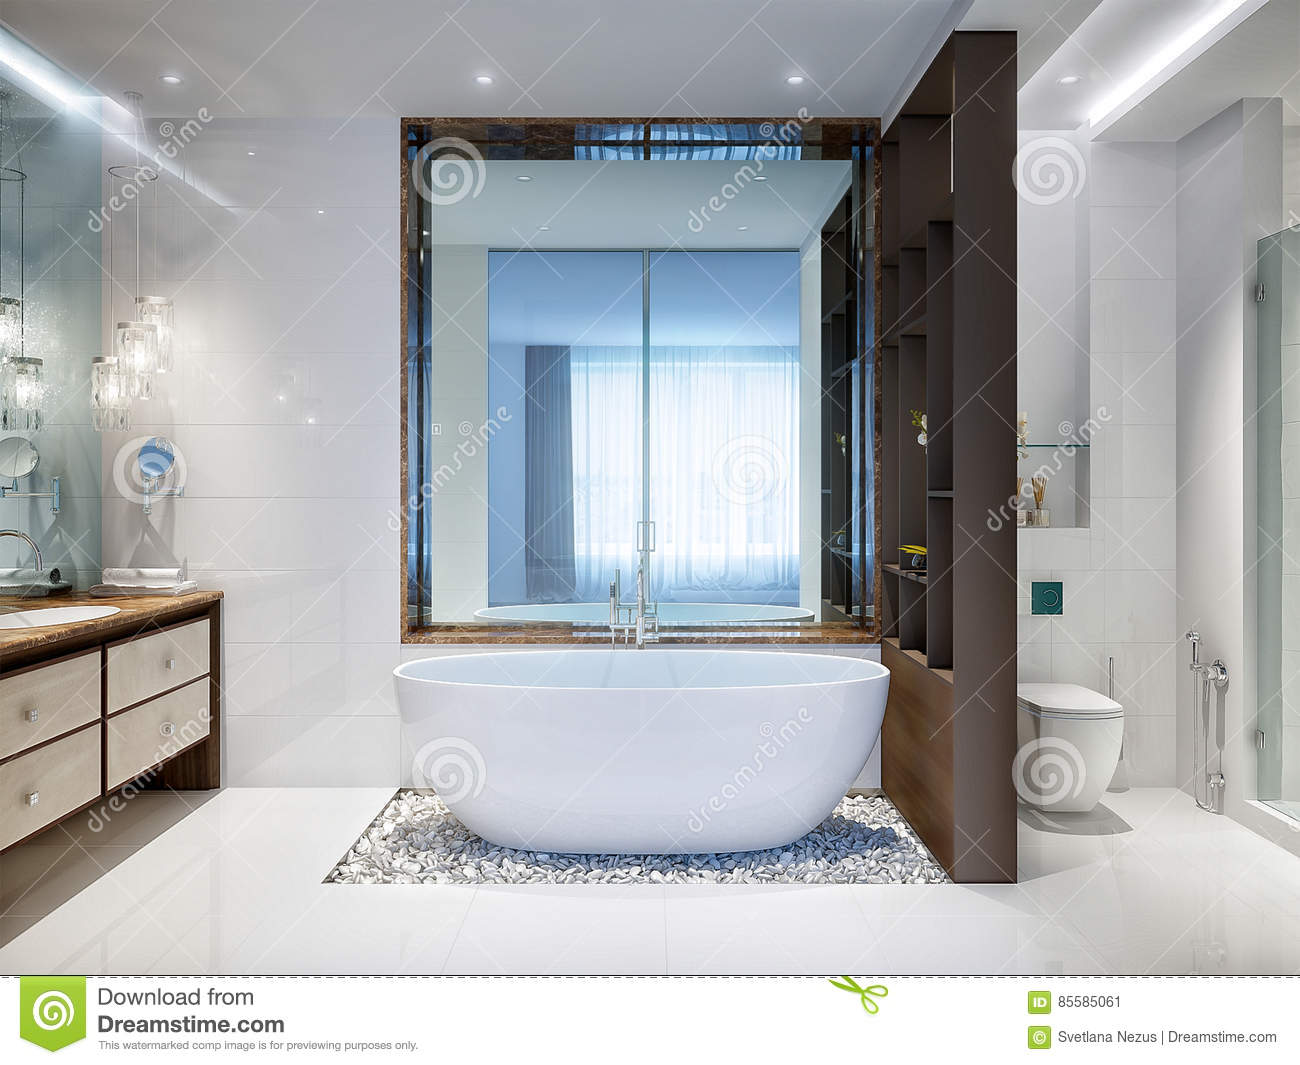 Spacious And Bright Modern Bathroom Stock Image - Image of glossy ...